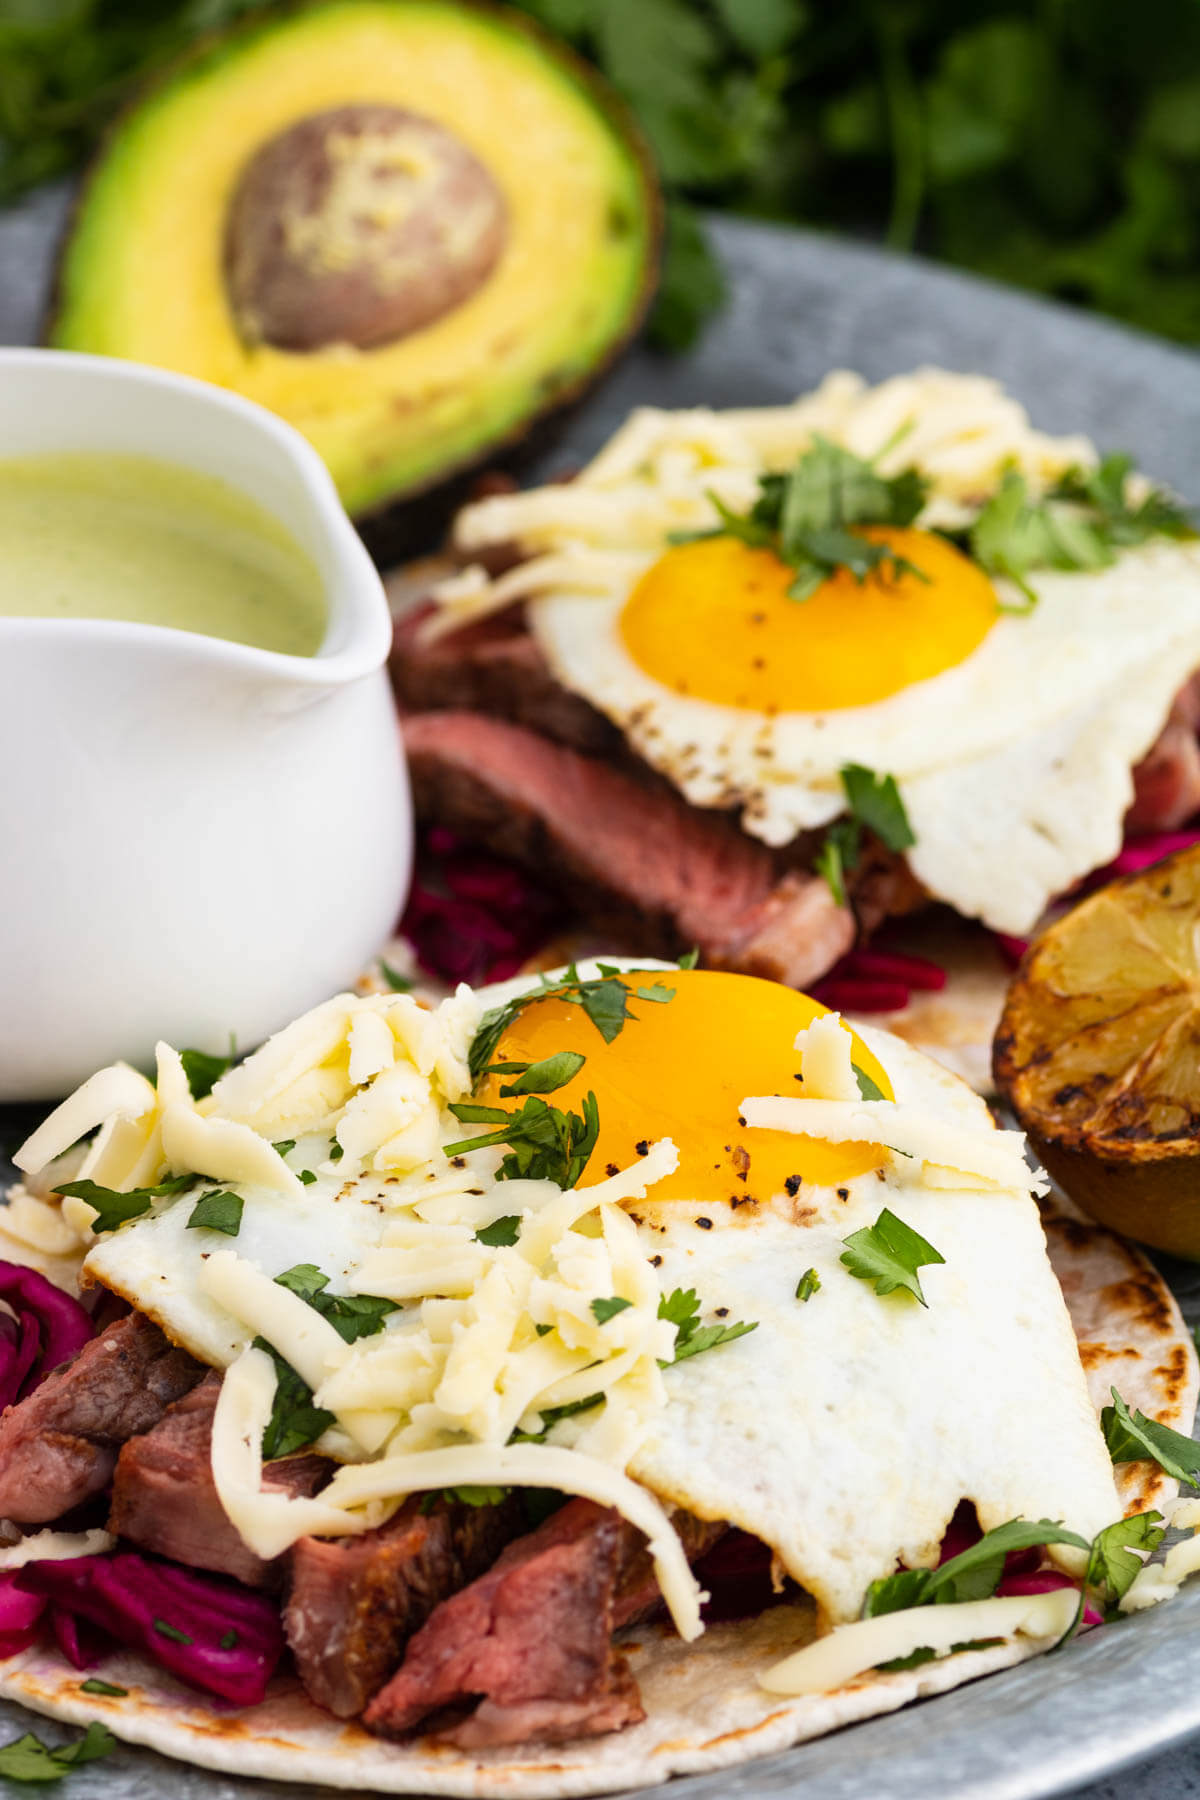 Close image of a steak taco topped with sunnyside up fried egg garnished with cheese and cilantro.